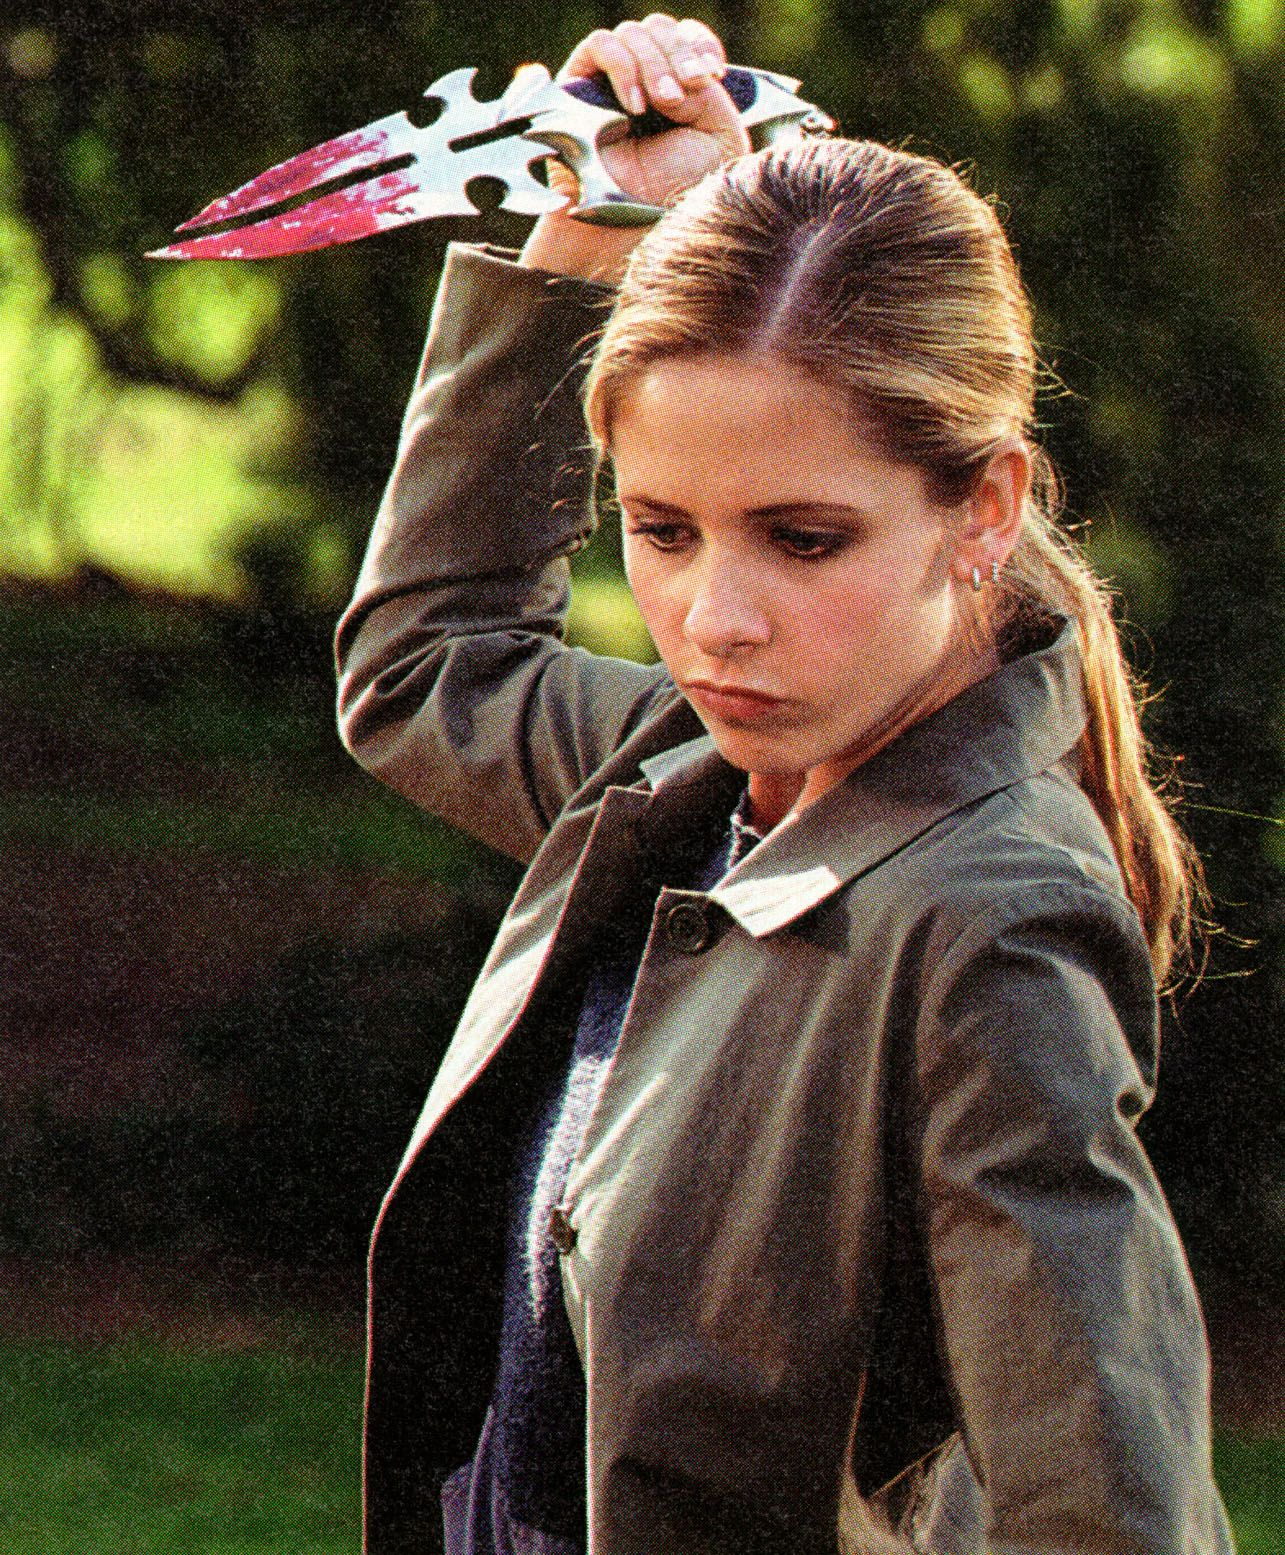 People born in '92 never watched Buffy.